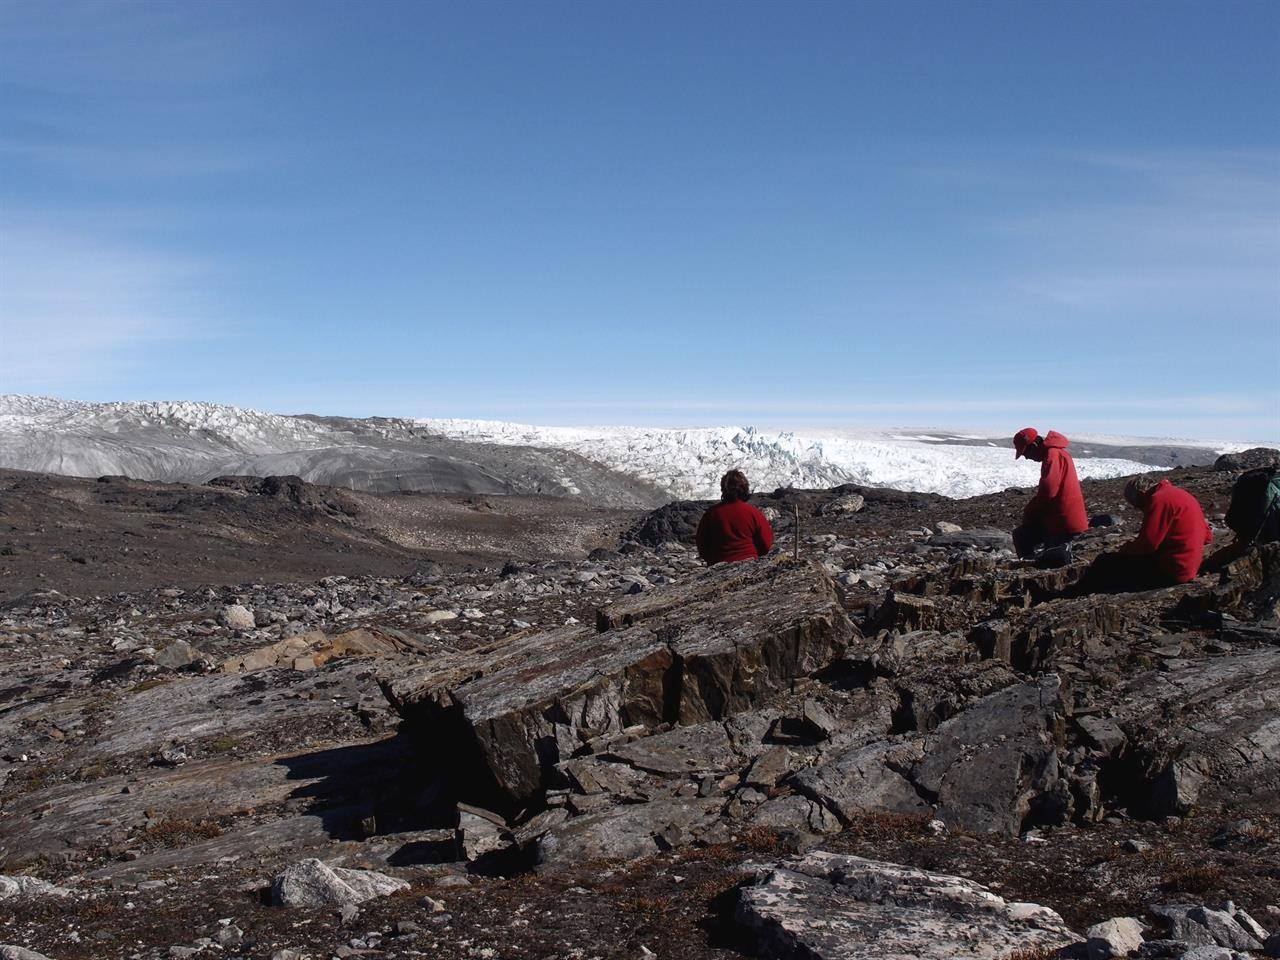 Oldest fossils on Earth? New look finds might just be rocks | AM